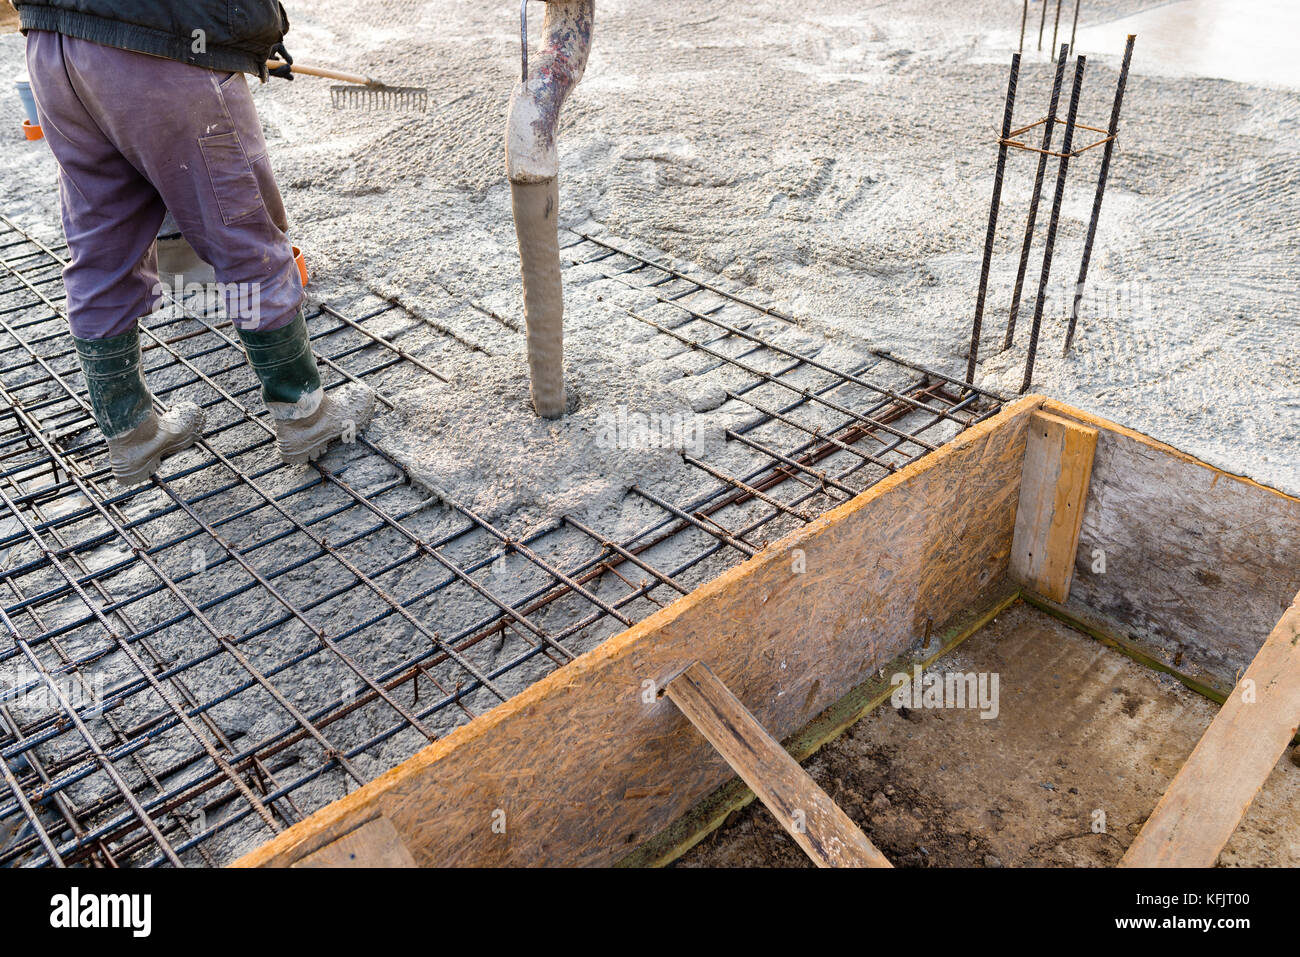 pouring concrete slab - concrete pouring during commercial concreting floors of buildings in construction Stock Photo